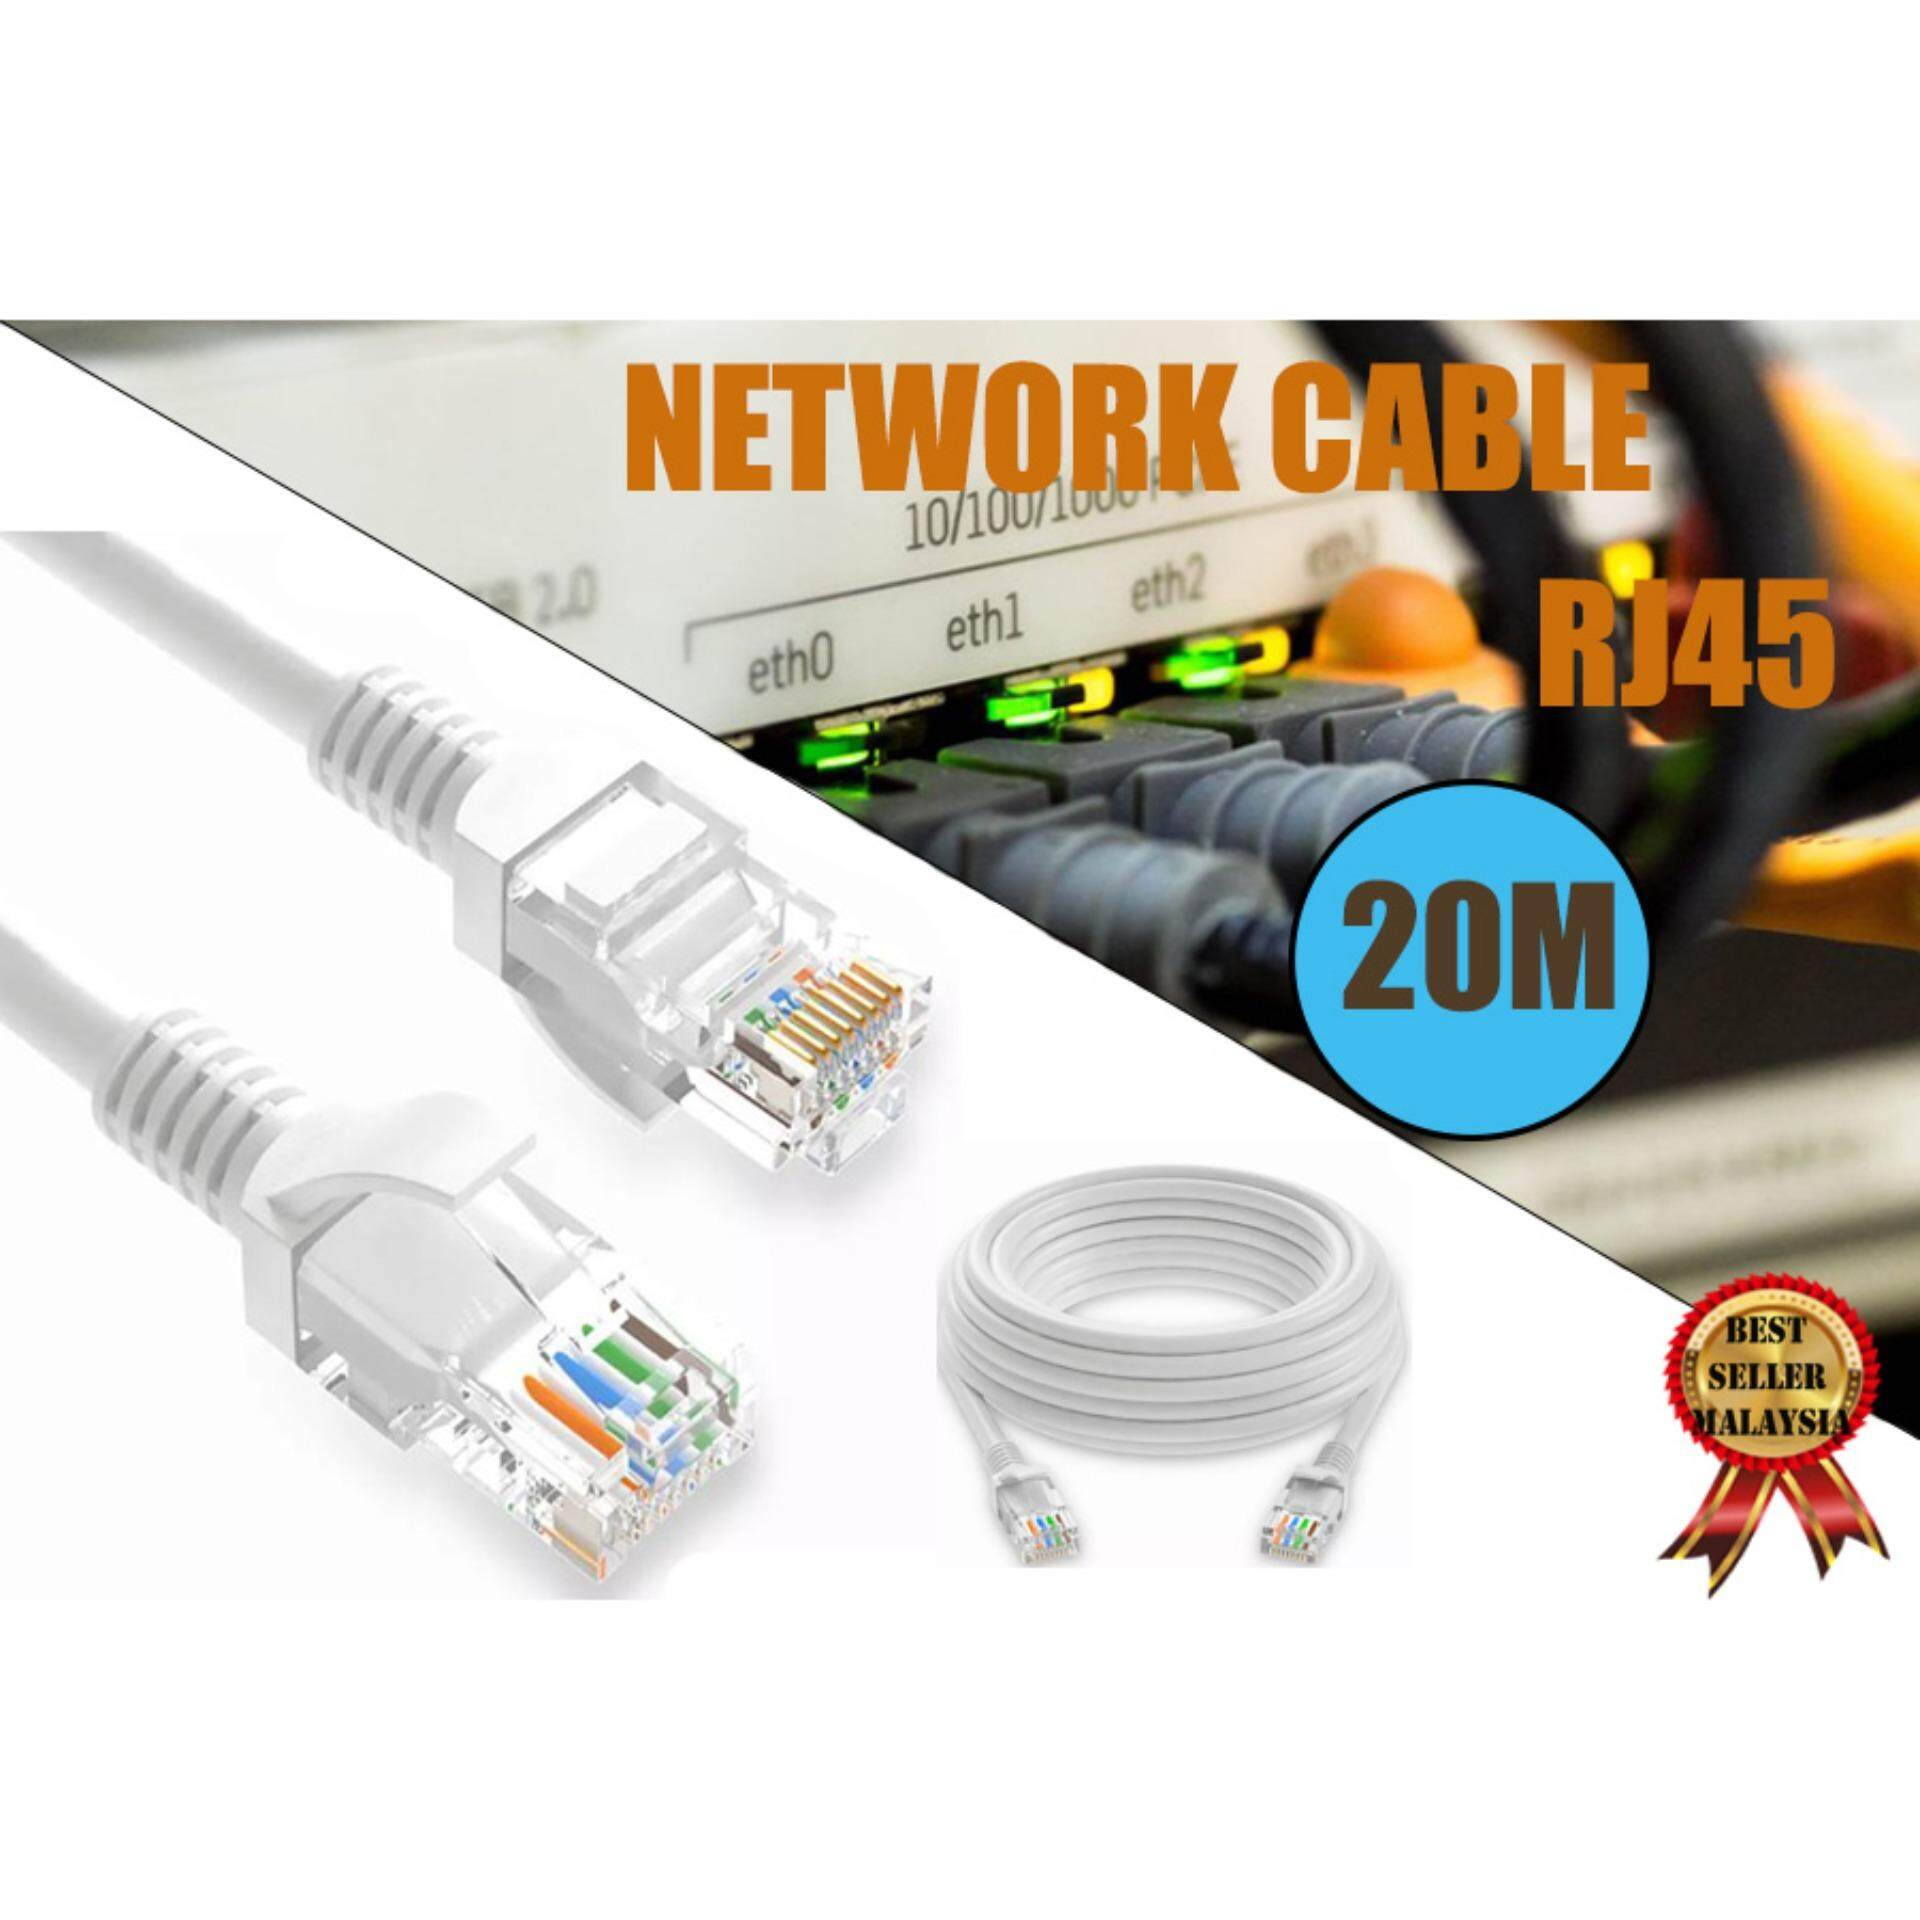 Computer Laptop Serial Cables For The Best Prices In Malaysia Rj45 Wiring Diagram Network Cable Cat5e Ethernet Lan 20 Meters